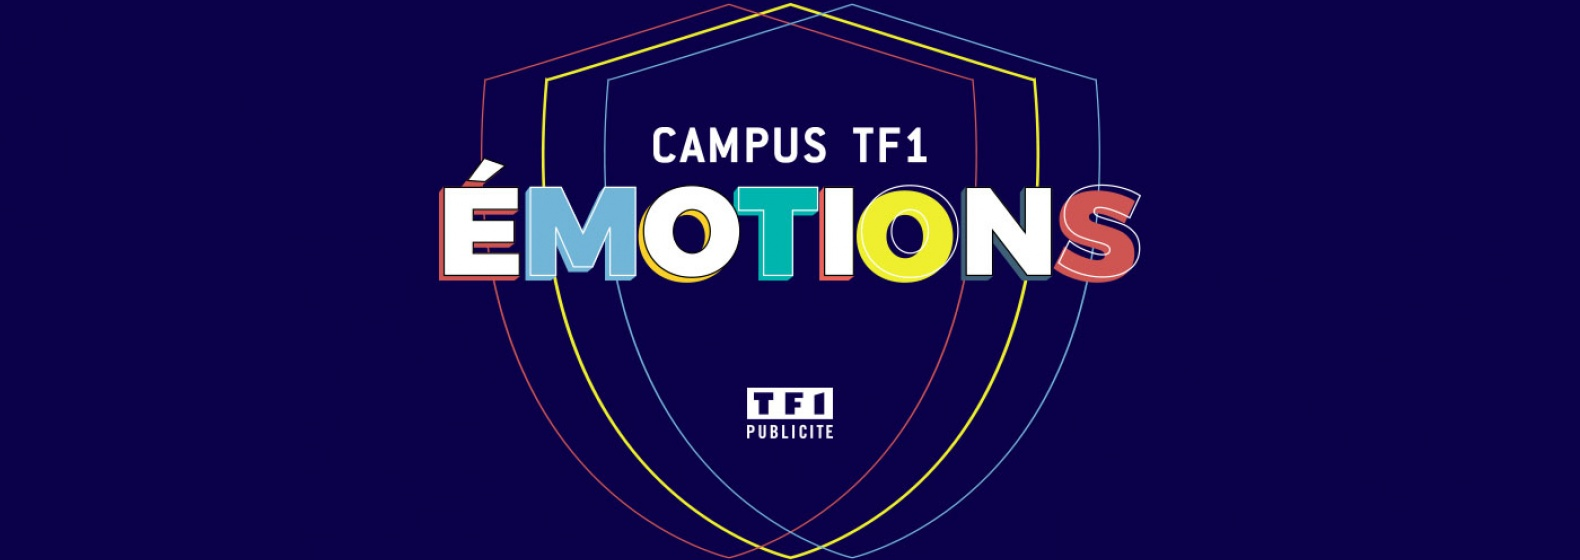 Campus TF1 Émotions HP XL